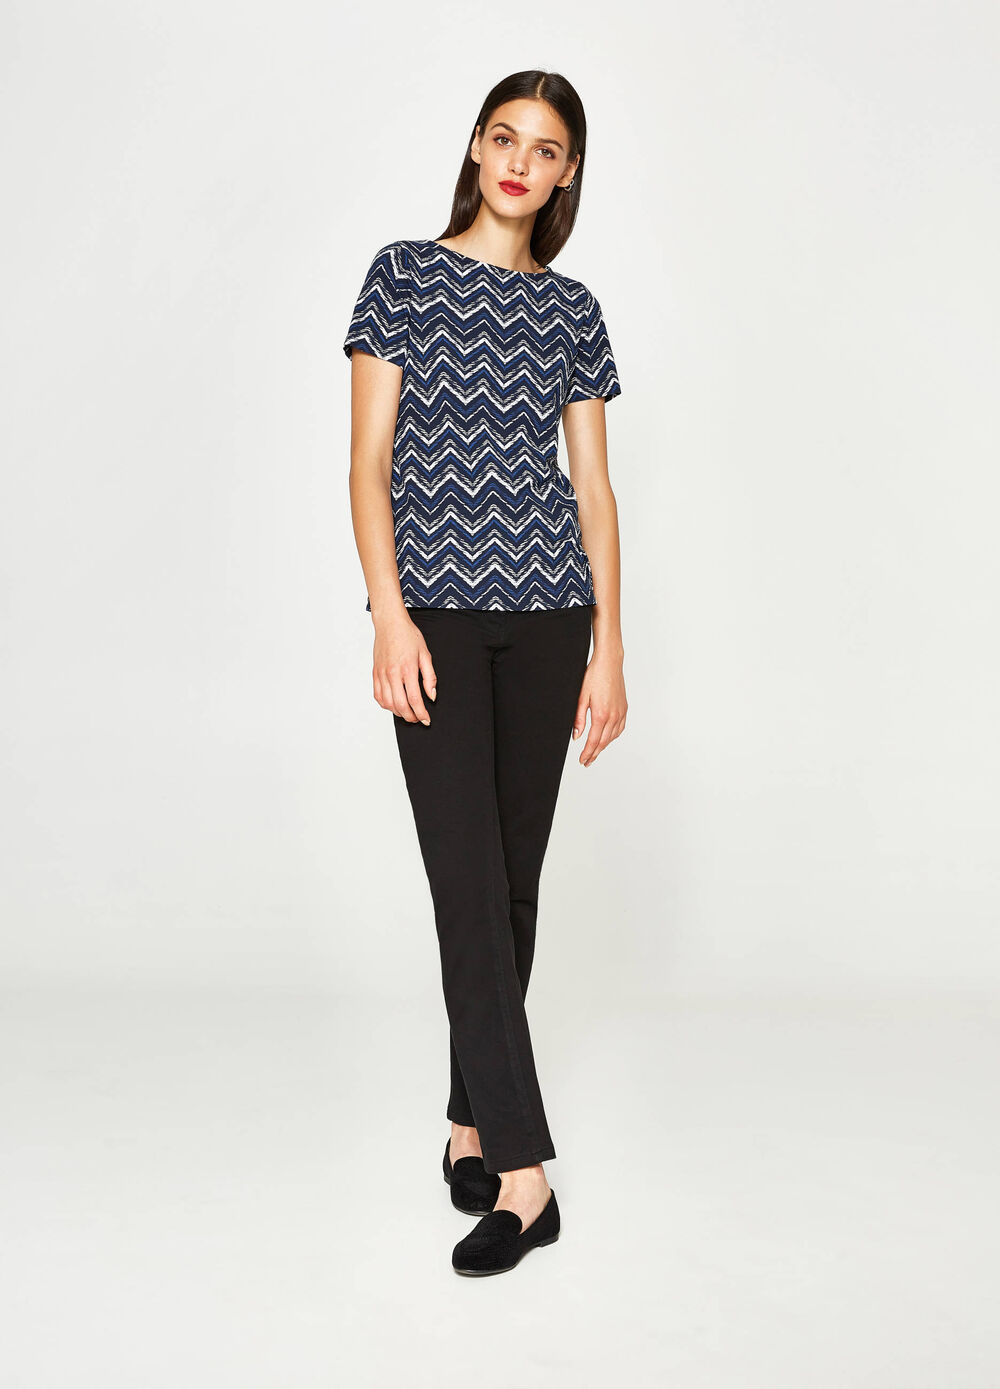 Cotton T-shirt with geometric pattern